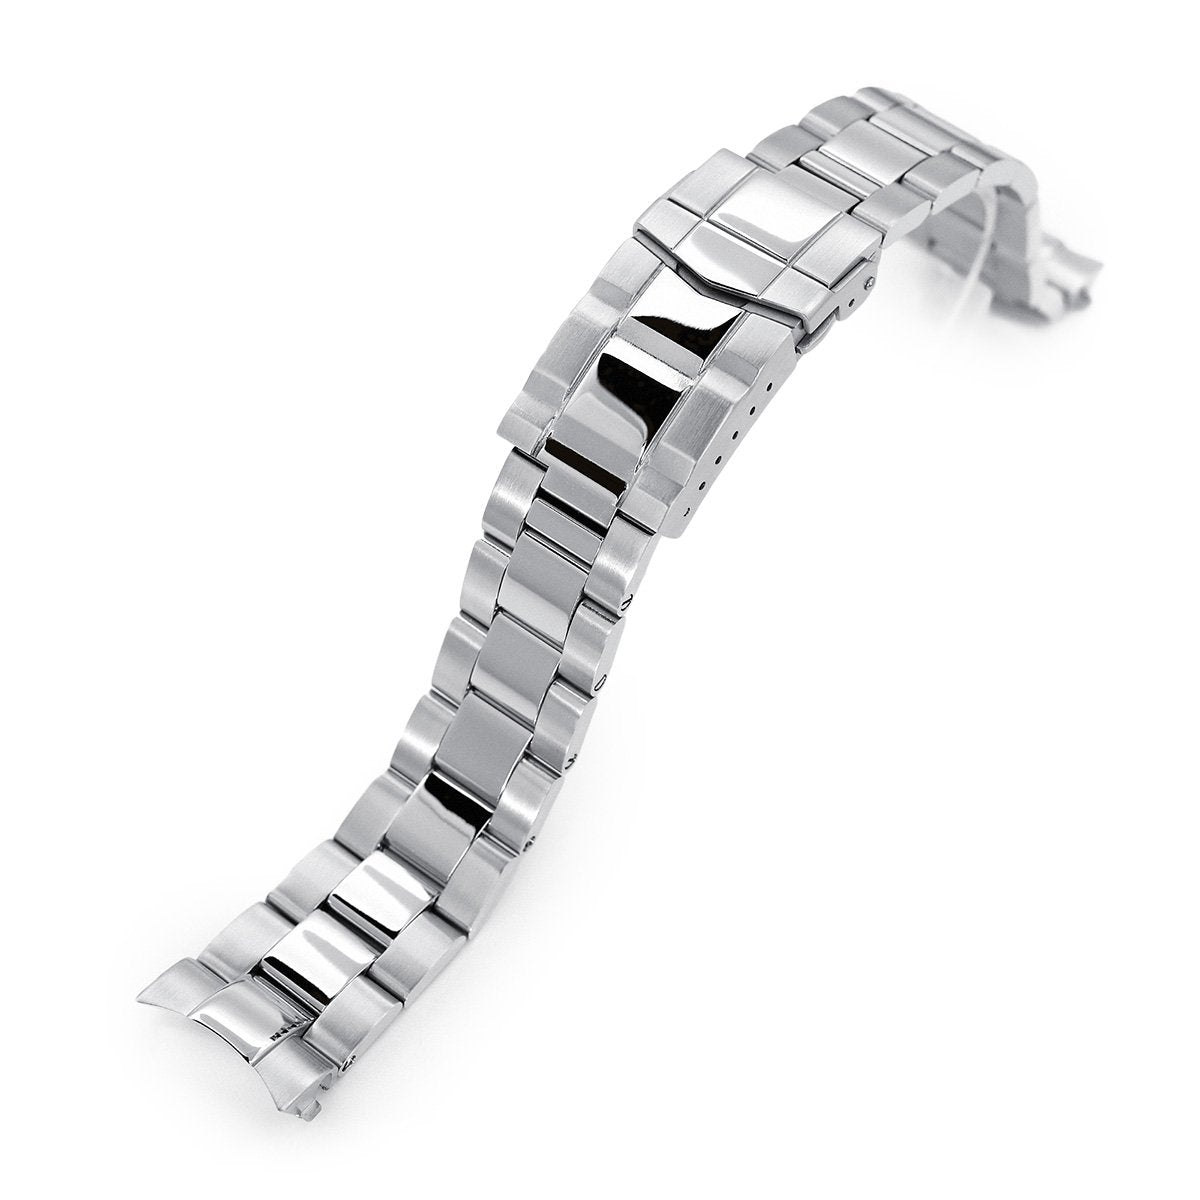 20mm Super-O Boyer 316L Stainless Steel Watch Bracelet for Seiko Cocktail SSA345 Brushed & Polished SUB Clasp Strapcode Watch Bands